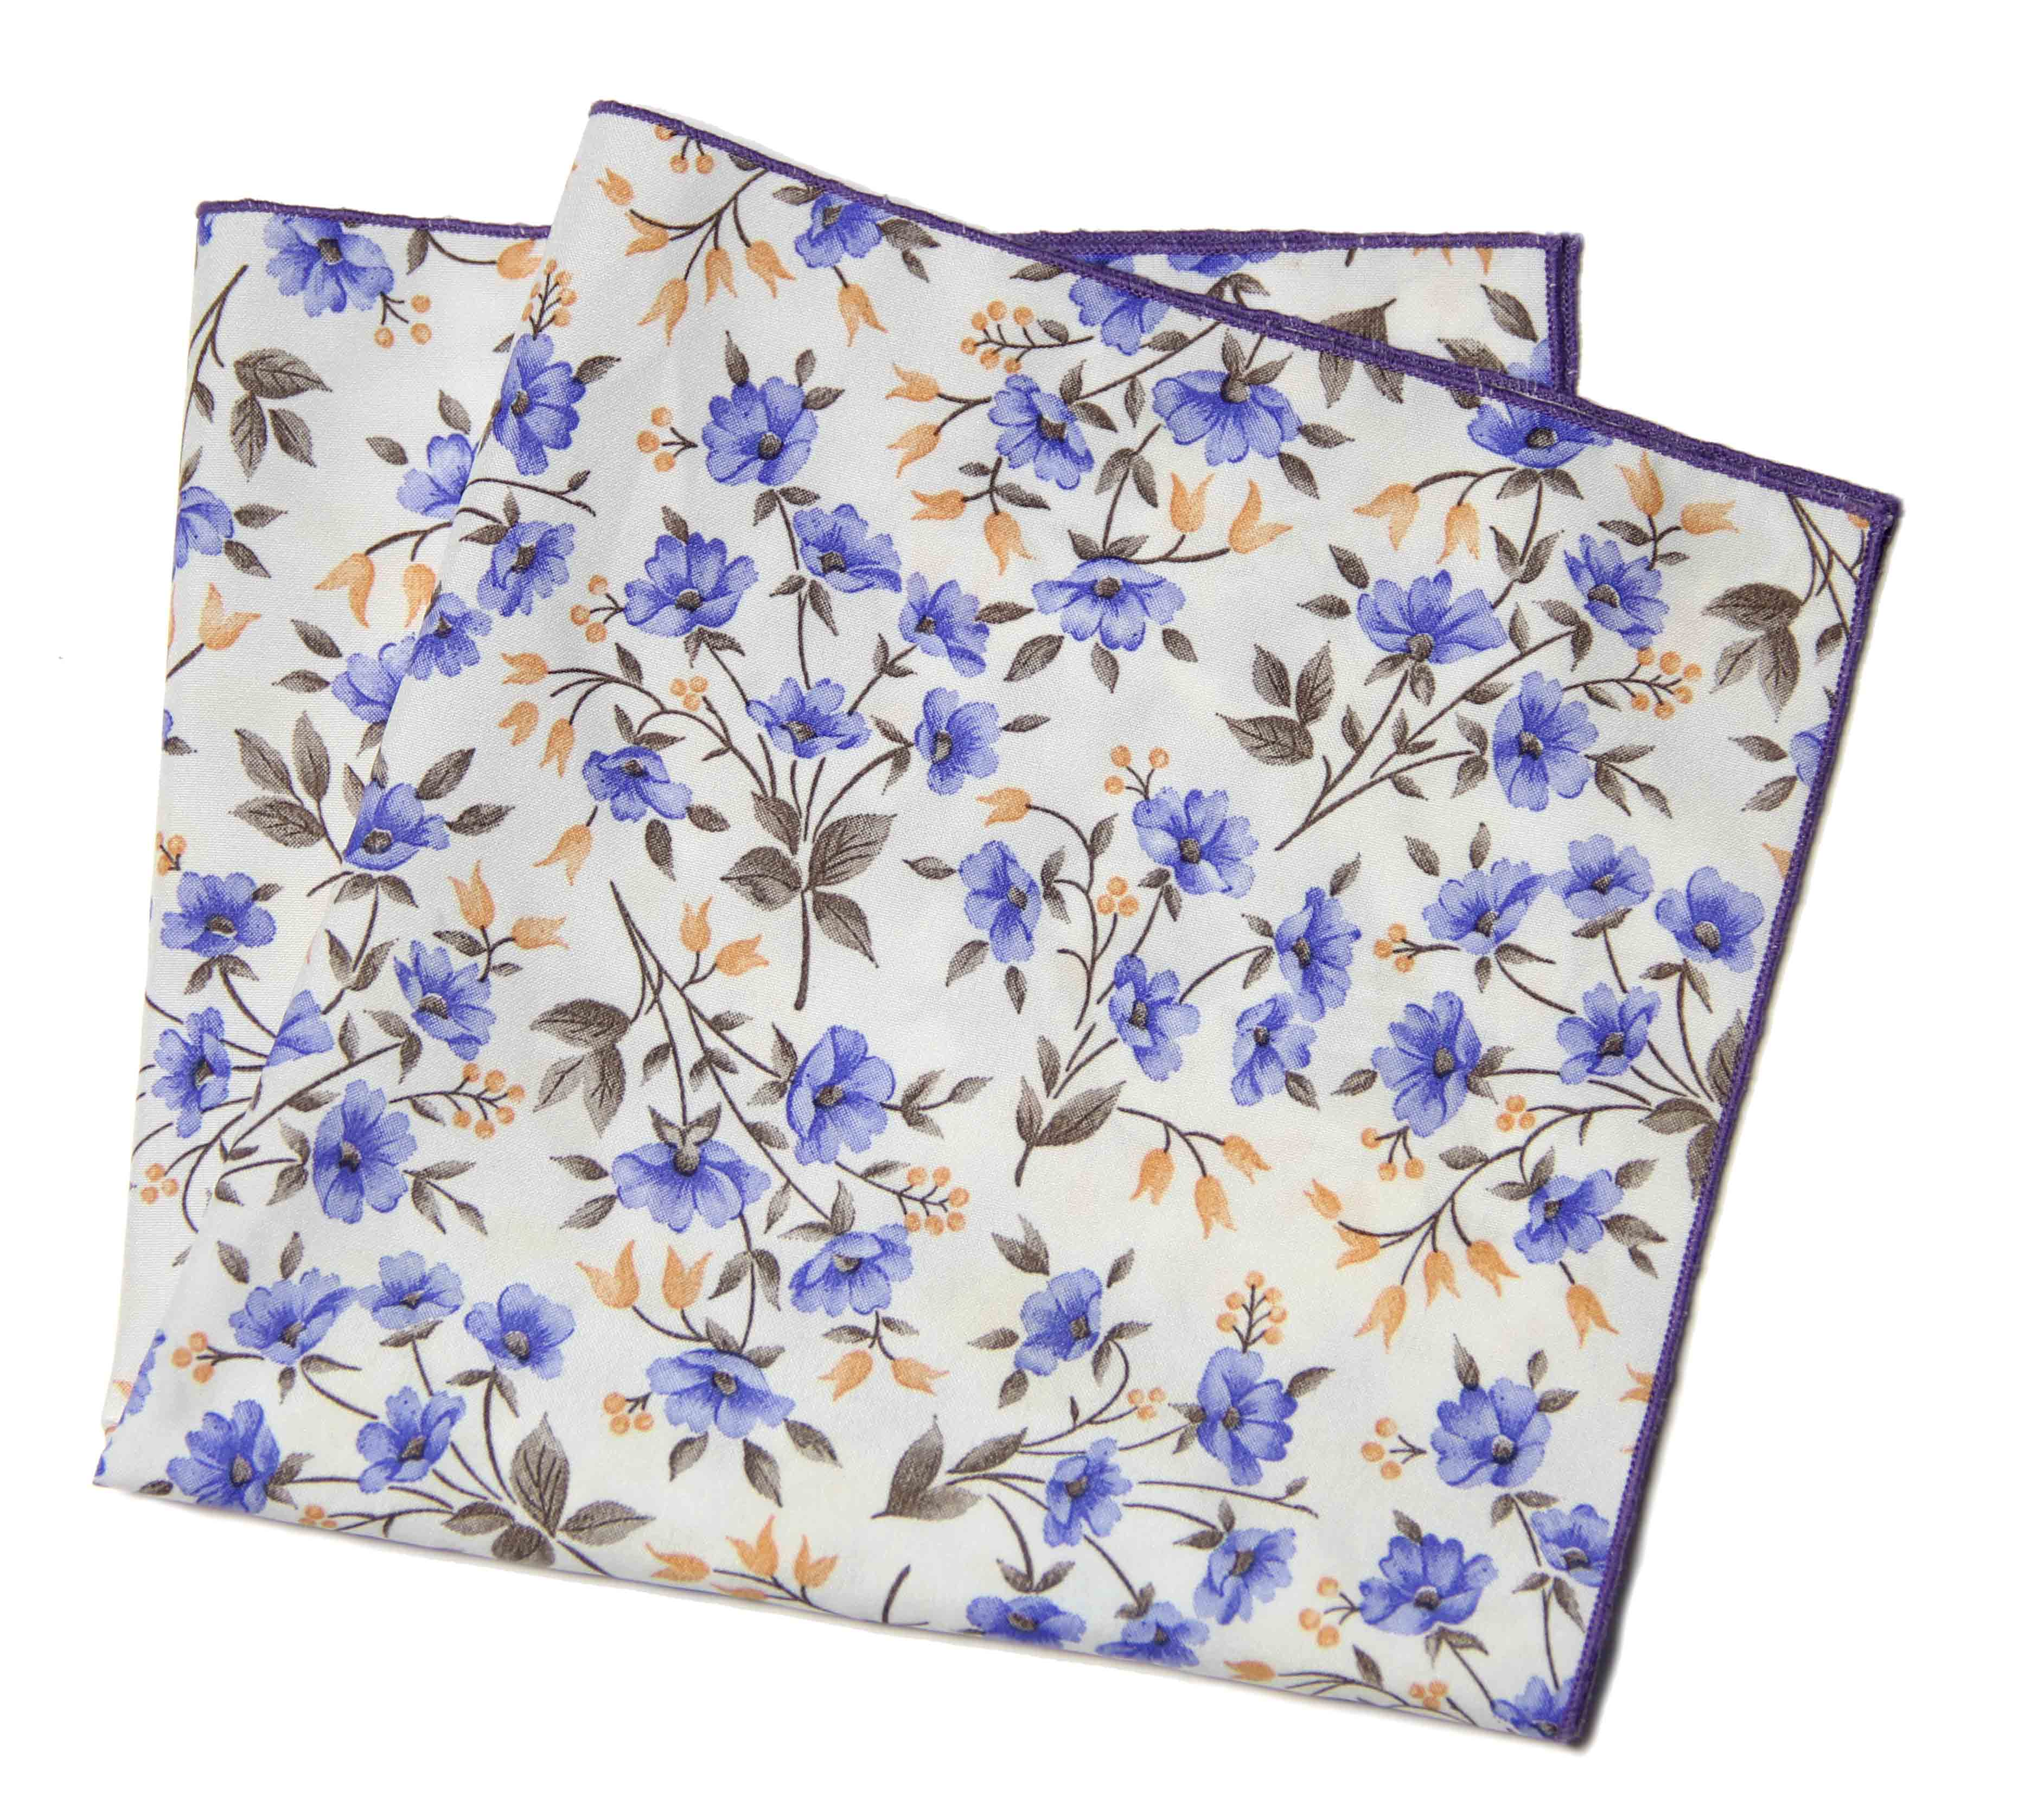 Gascoigne Pocket Square Floral Large 17 inches X 17 inches Men's